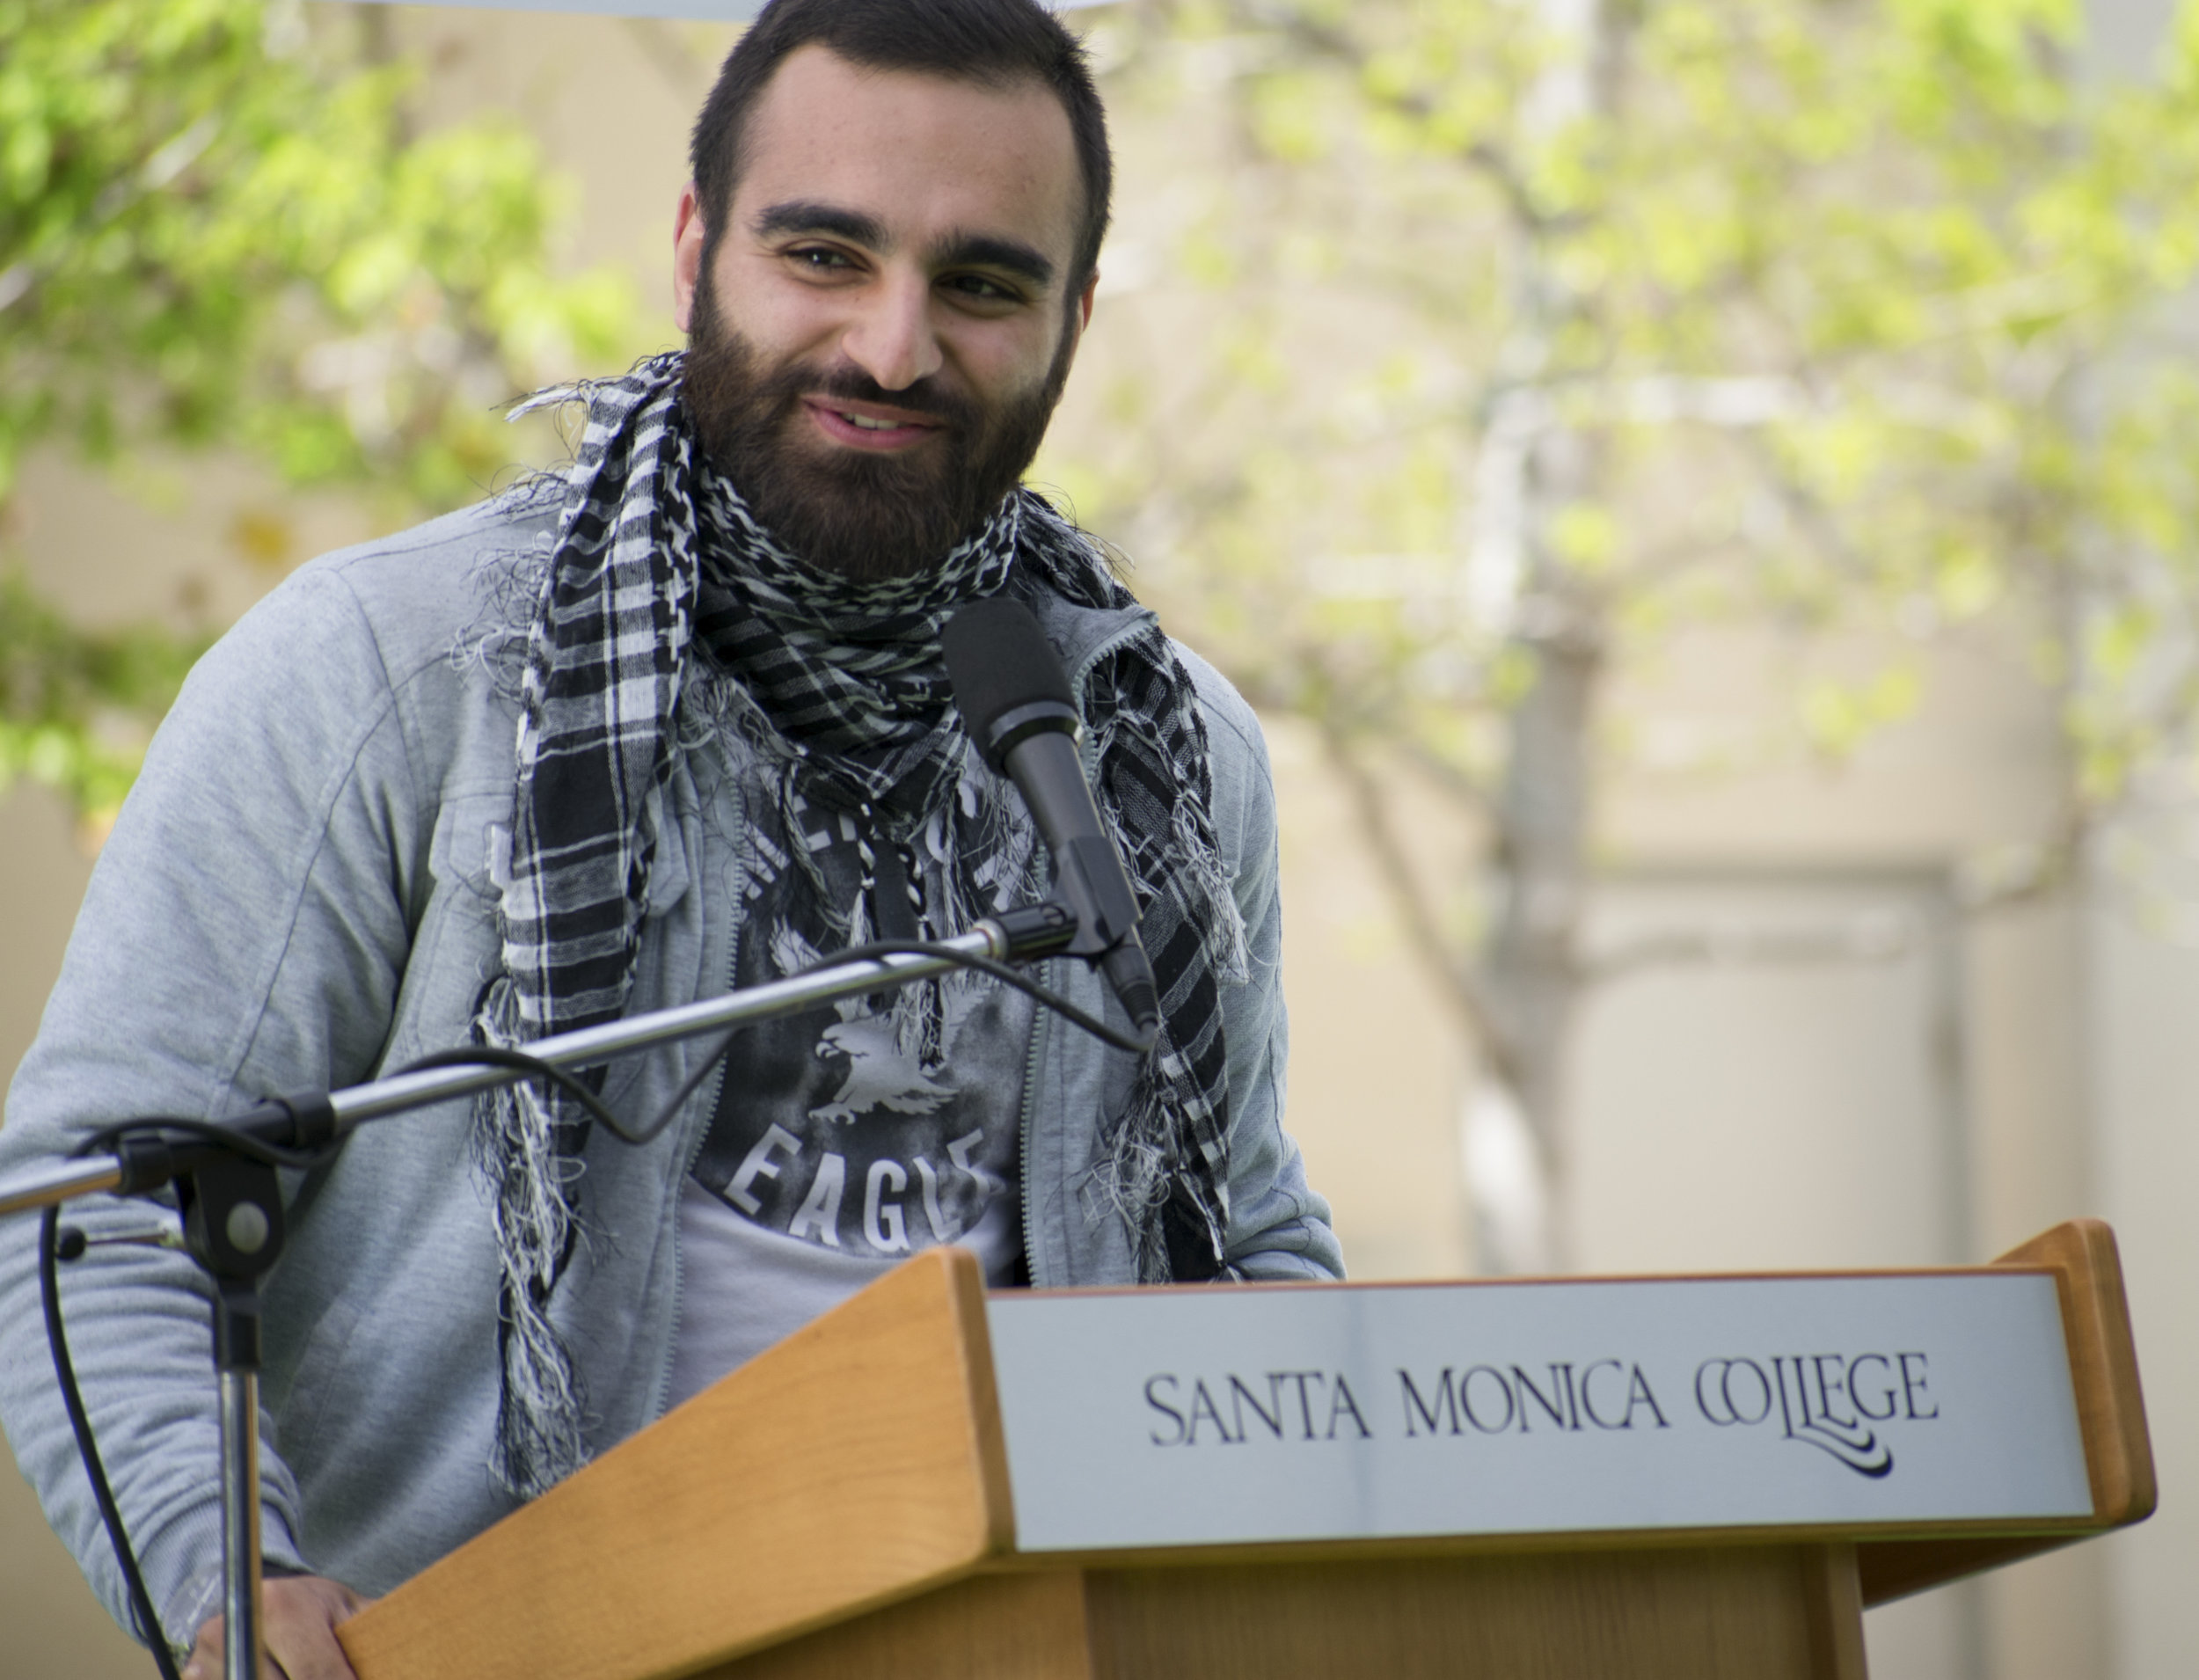 Hesham Jarmakani, a candidate for the position of vice president on the Associated Students of Santa Monica College board introduces himself during a forum to give candidates running for the election a platform on April 3 in Santa Monica, California. (Ethan Lauren/Corsair Photo)